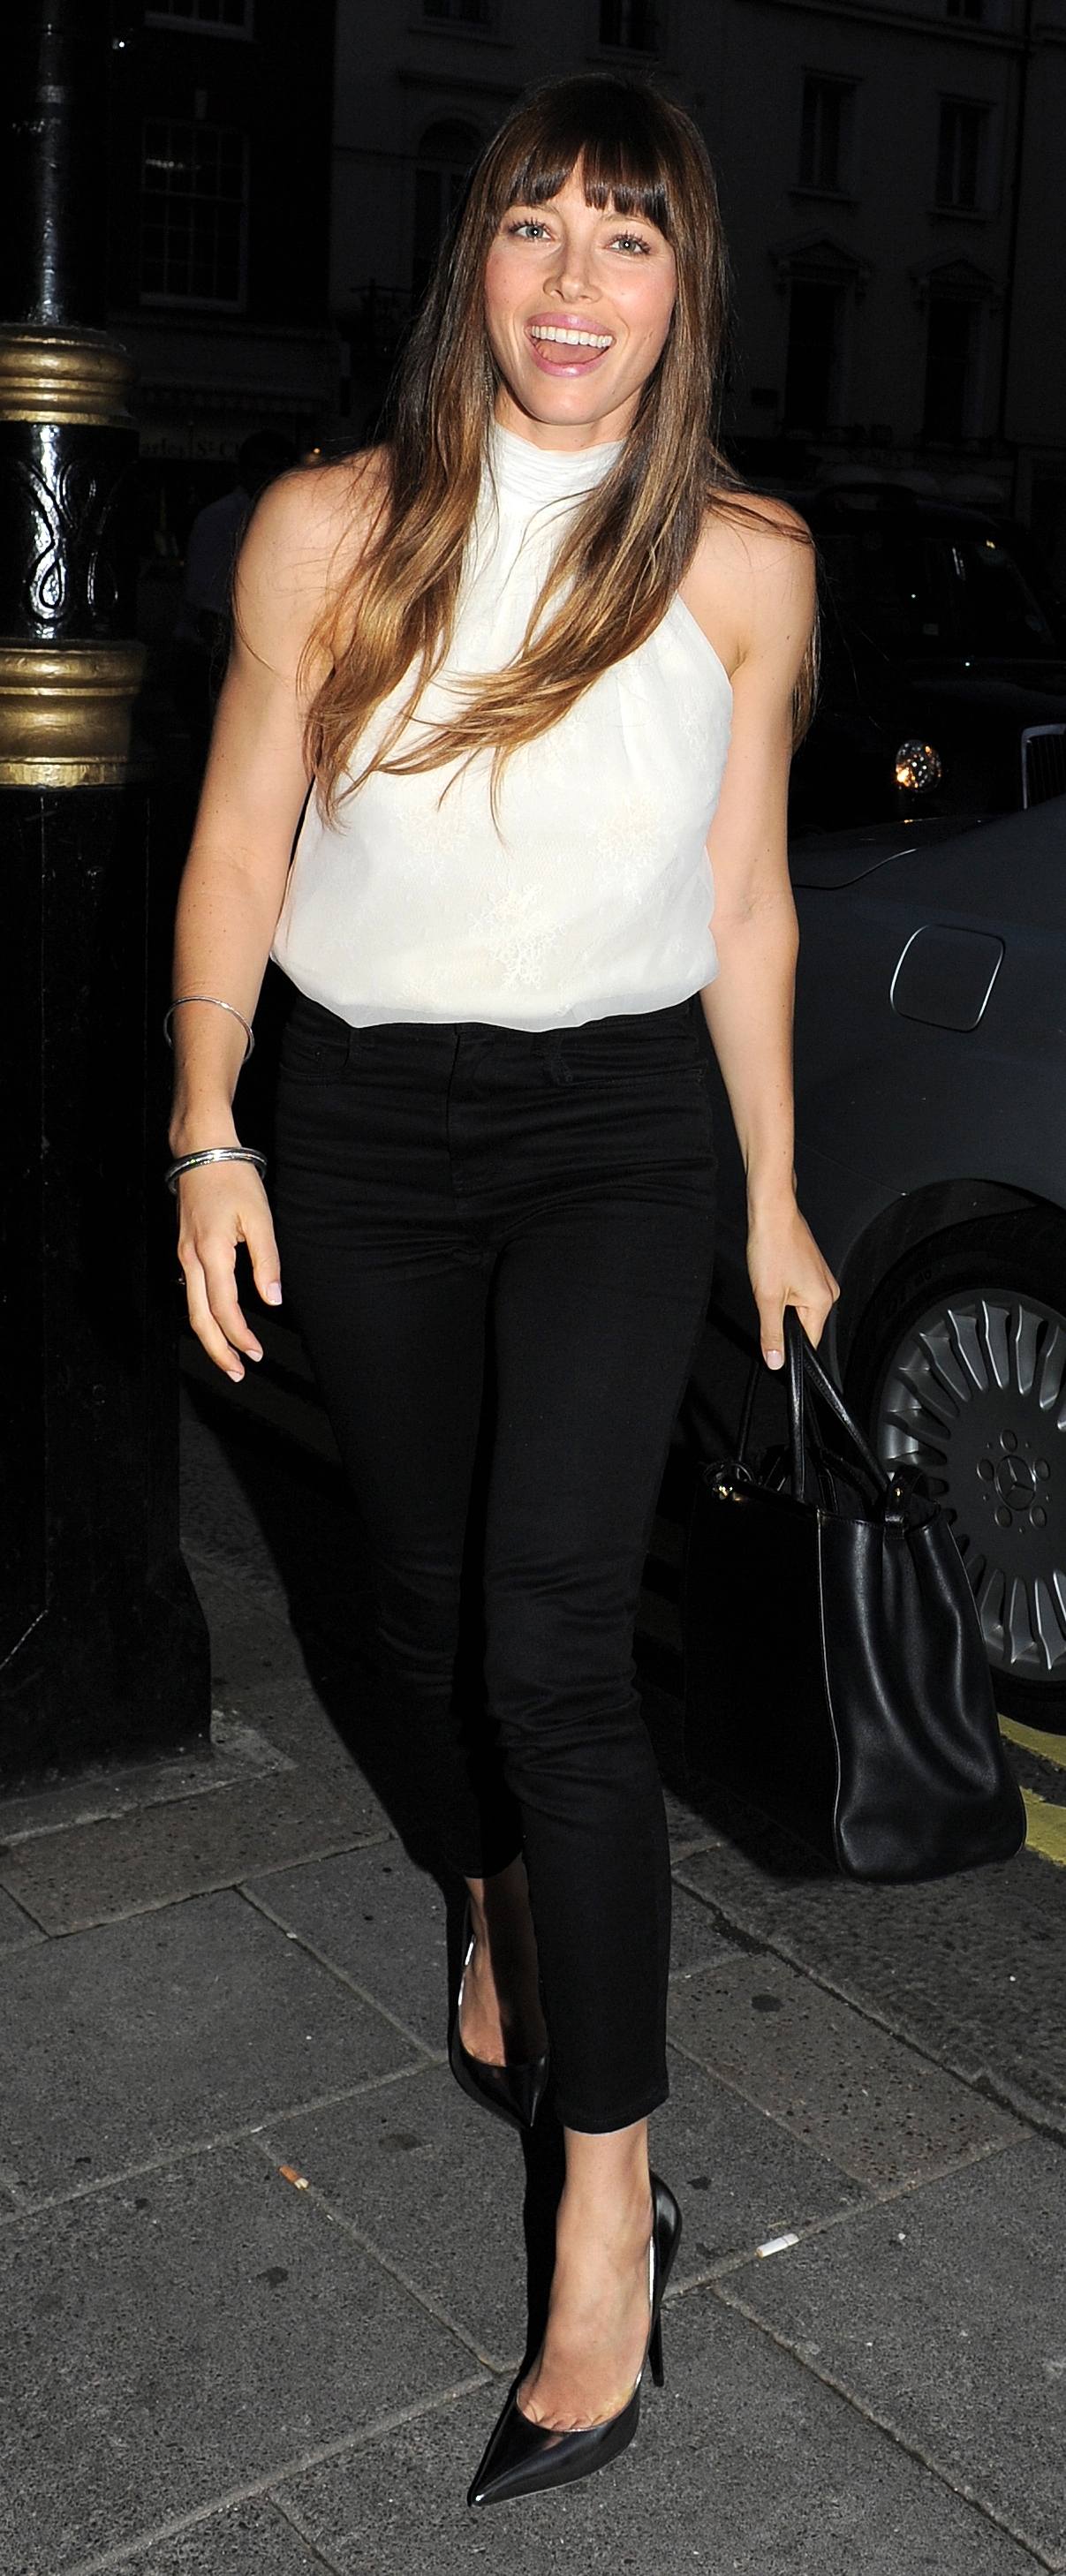 WORLD RIGHTS    Jessica Biel seen on a night out at Little House restaurant in Mayfair. London. UK. 15/08/2012    BYLINE BIGPICTURESPHOTO.COM:    REF:001JNR/RV    USAGE OF THIS IMAGE OR COPY WRITTEN THAT IS BASED ON THE CAPTION, IS CONDITIONAL UPON THE ACCEPTANCE OF BIG PICTURES'S TERMS AND CONDITIONS, AVAILABLE AT WWW.BIGPICTURESPHOTO.COM    STRICTLY NO MOBILE PHONE APPLICATION OR ?APPS? USE WITHOUT PRIOR AGREEMENT